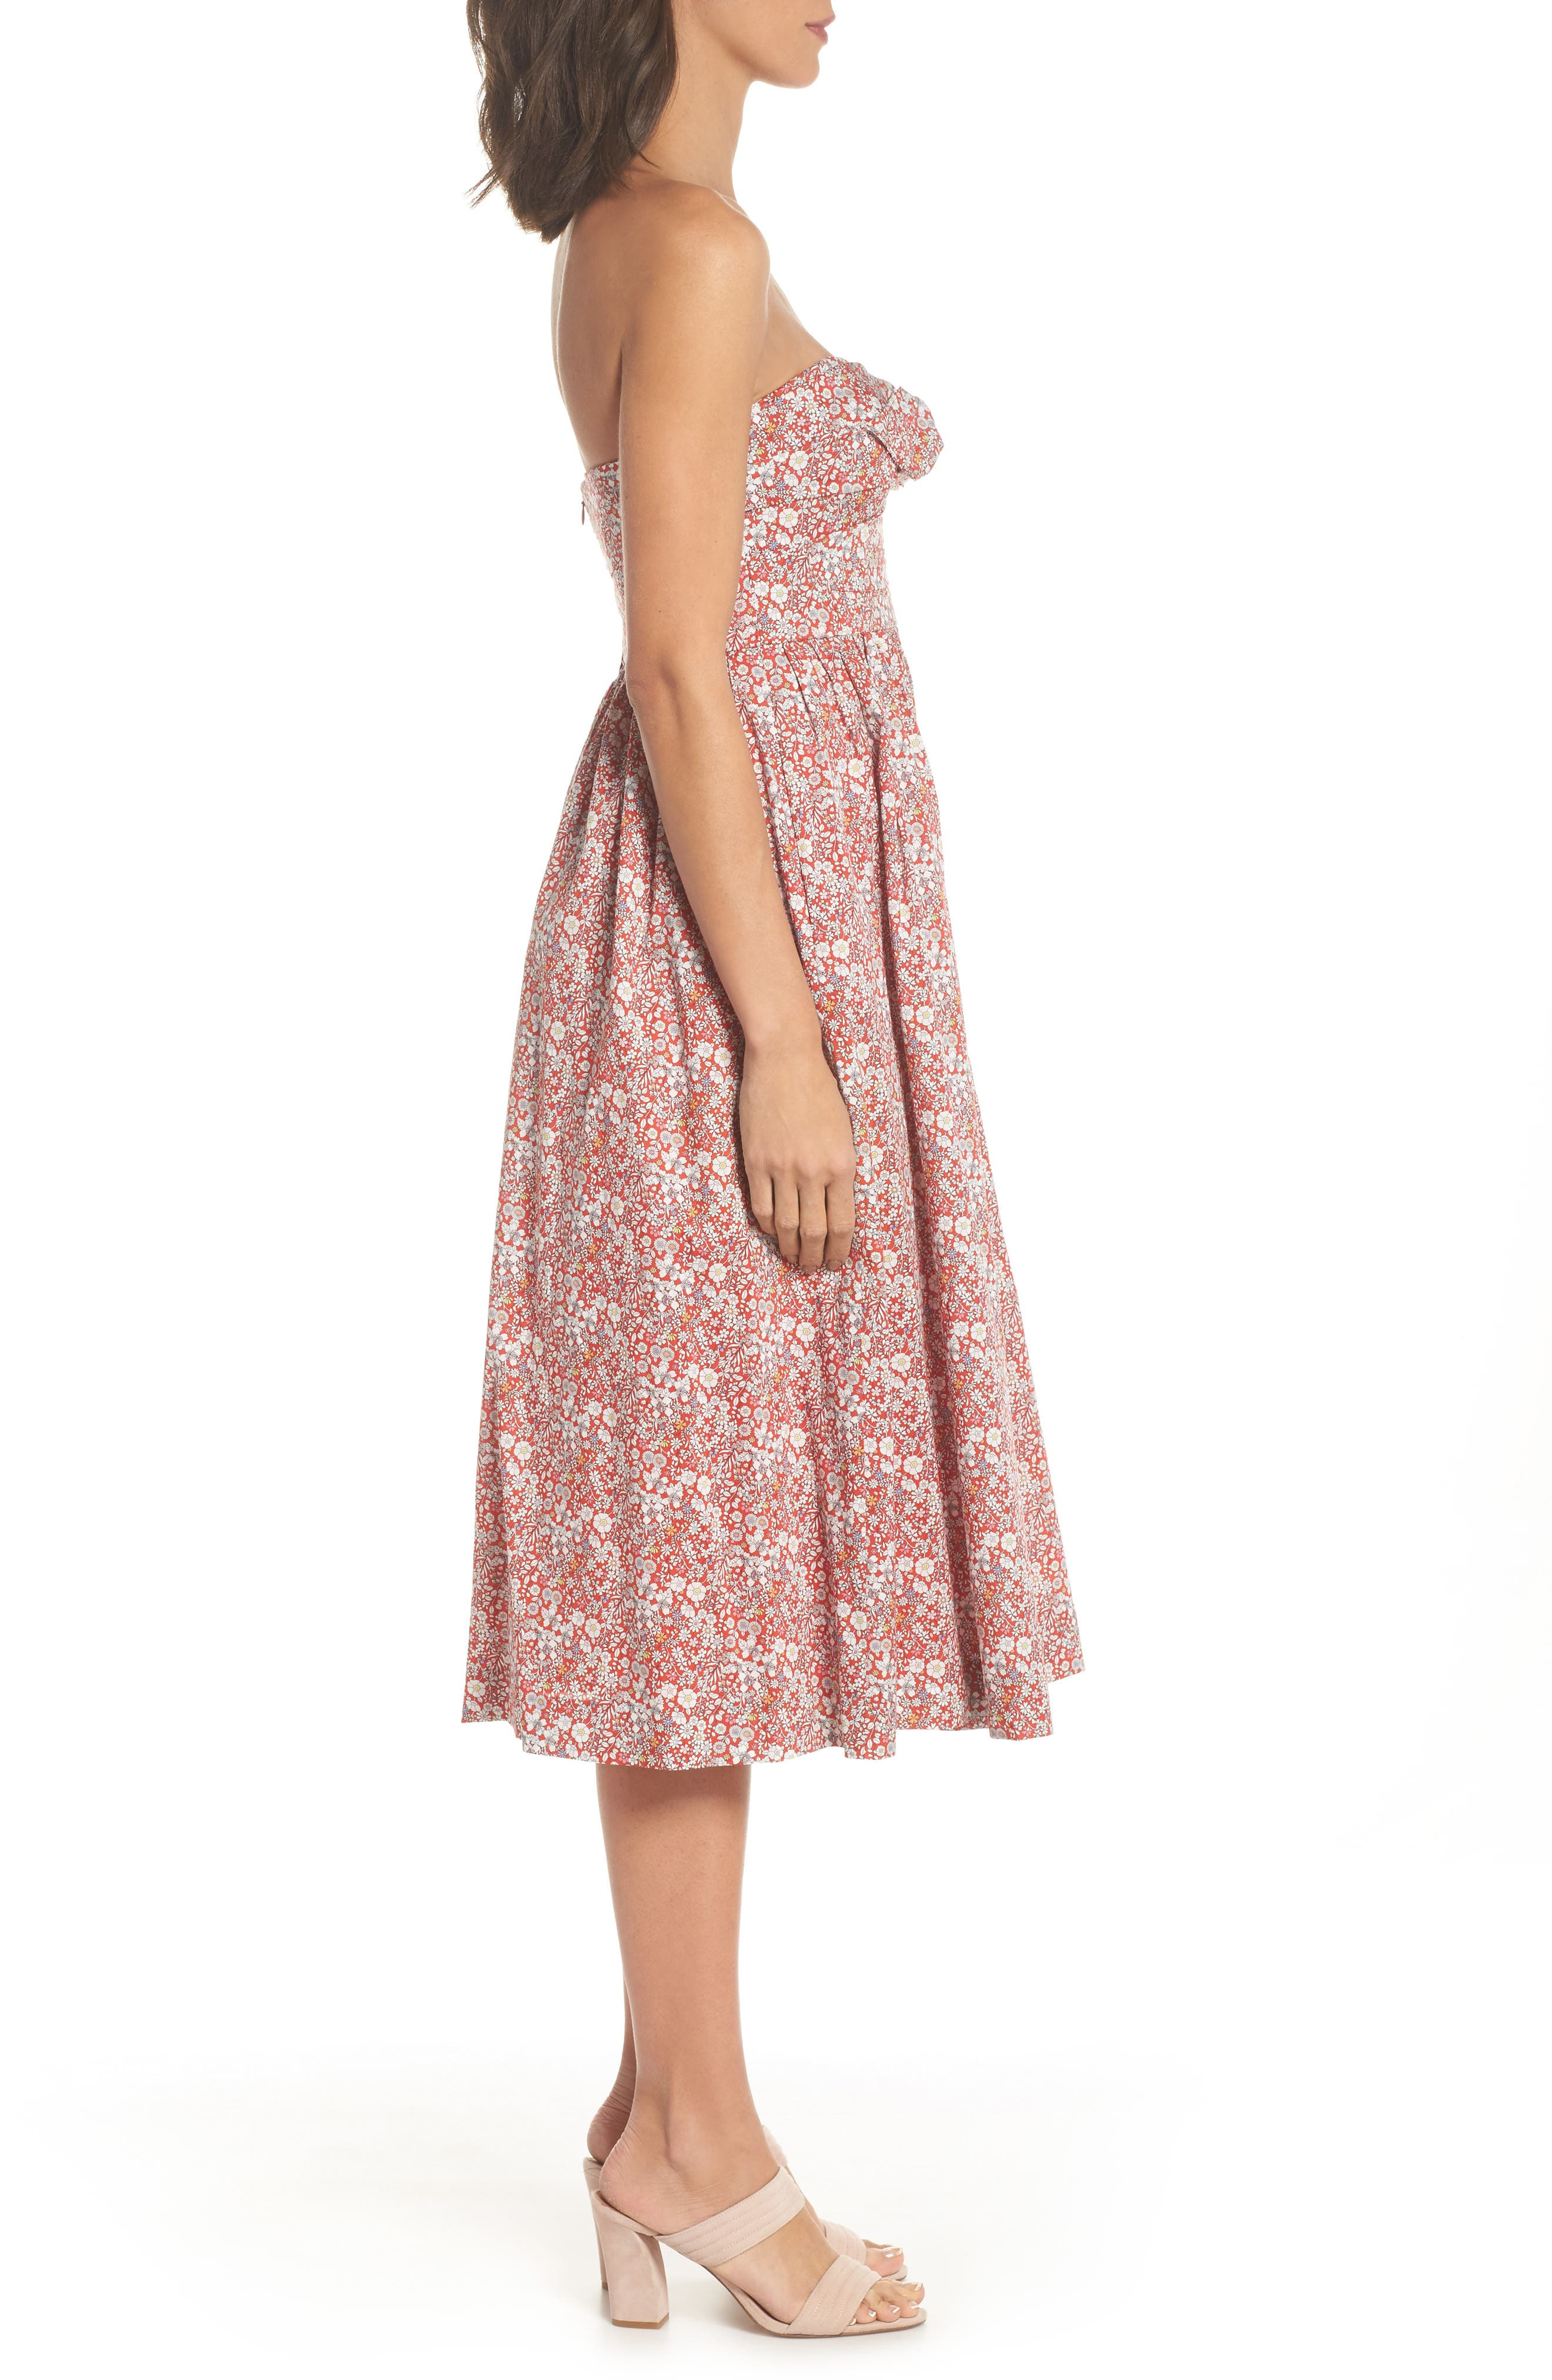 Liberty Tie Front Strapless Dress,                             Alternate thumbnail 3, color,                             600